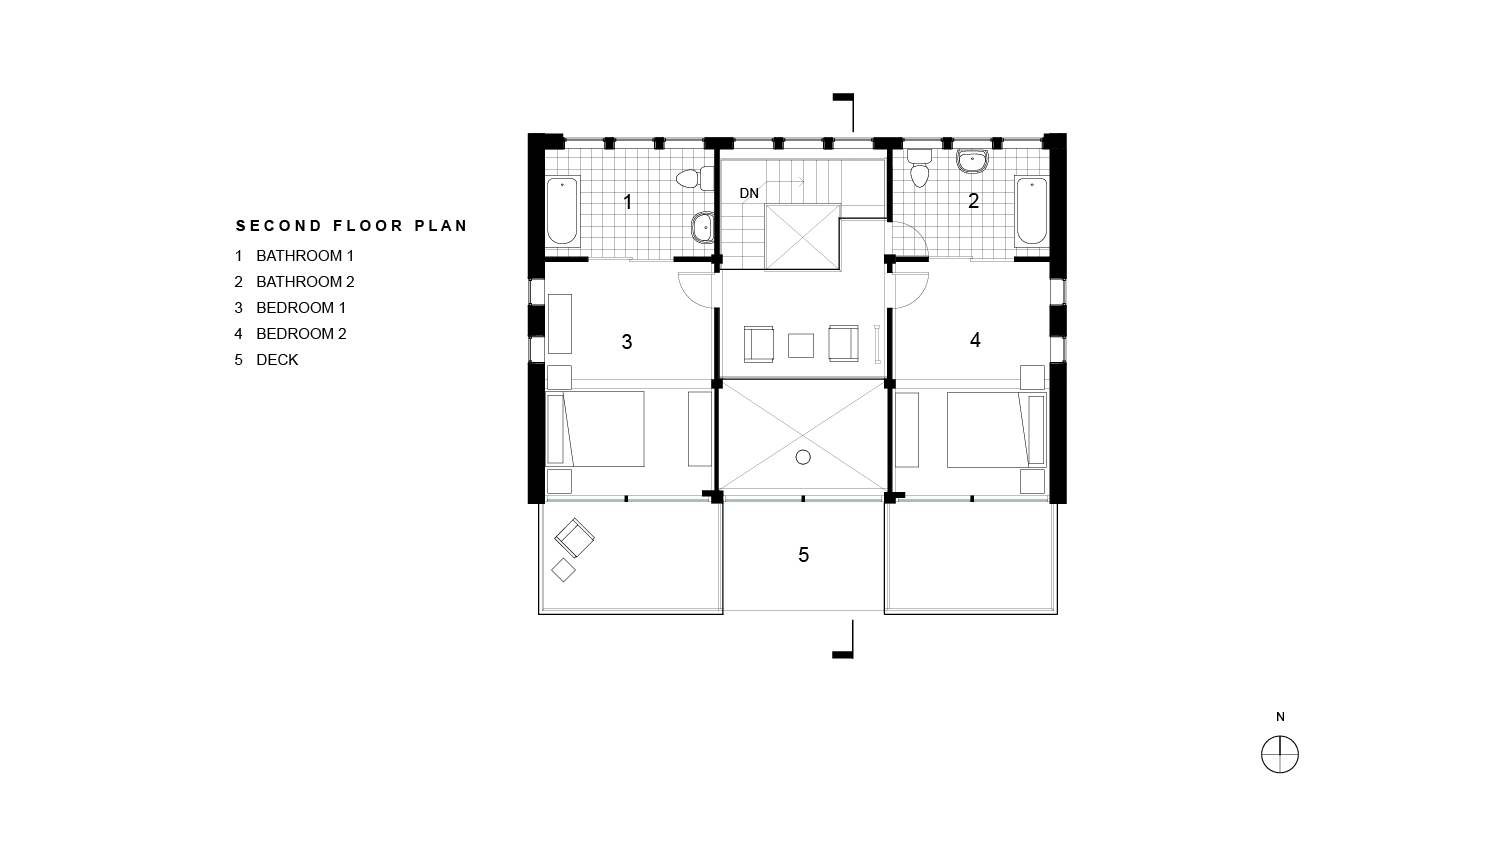 mullane-residence-second-floor-plan